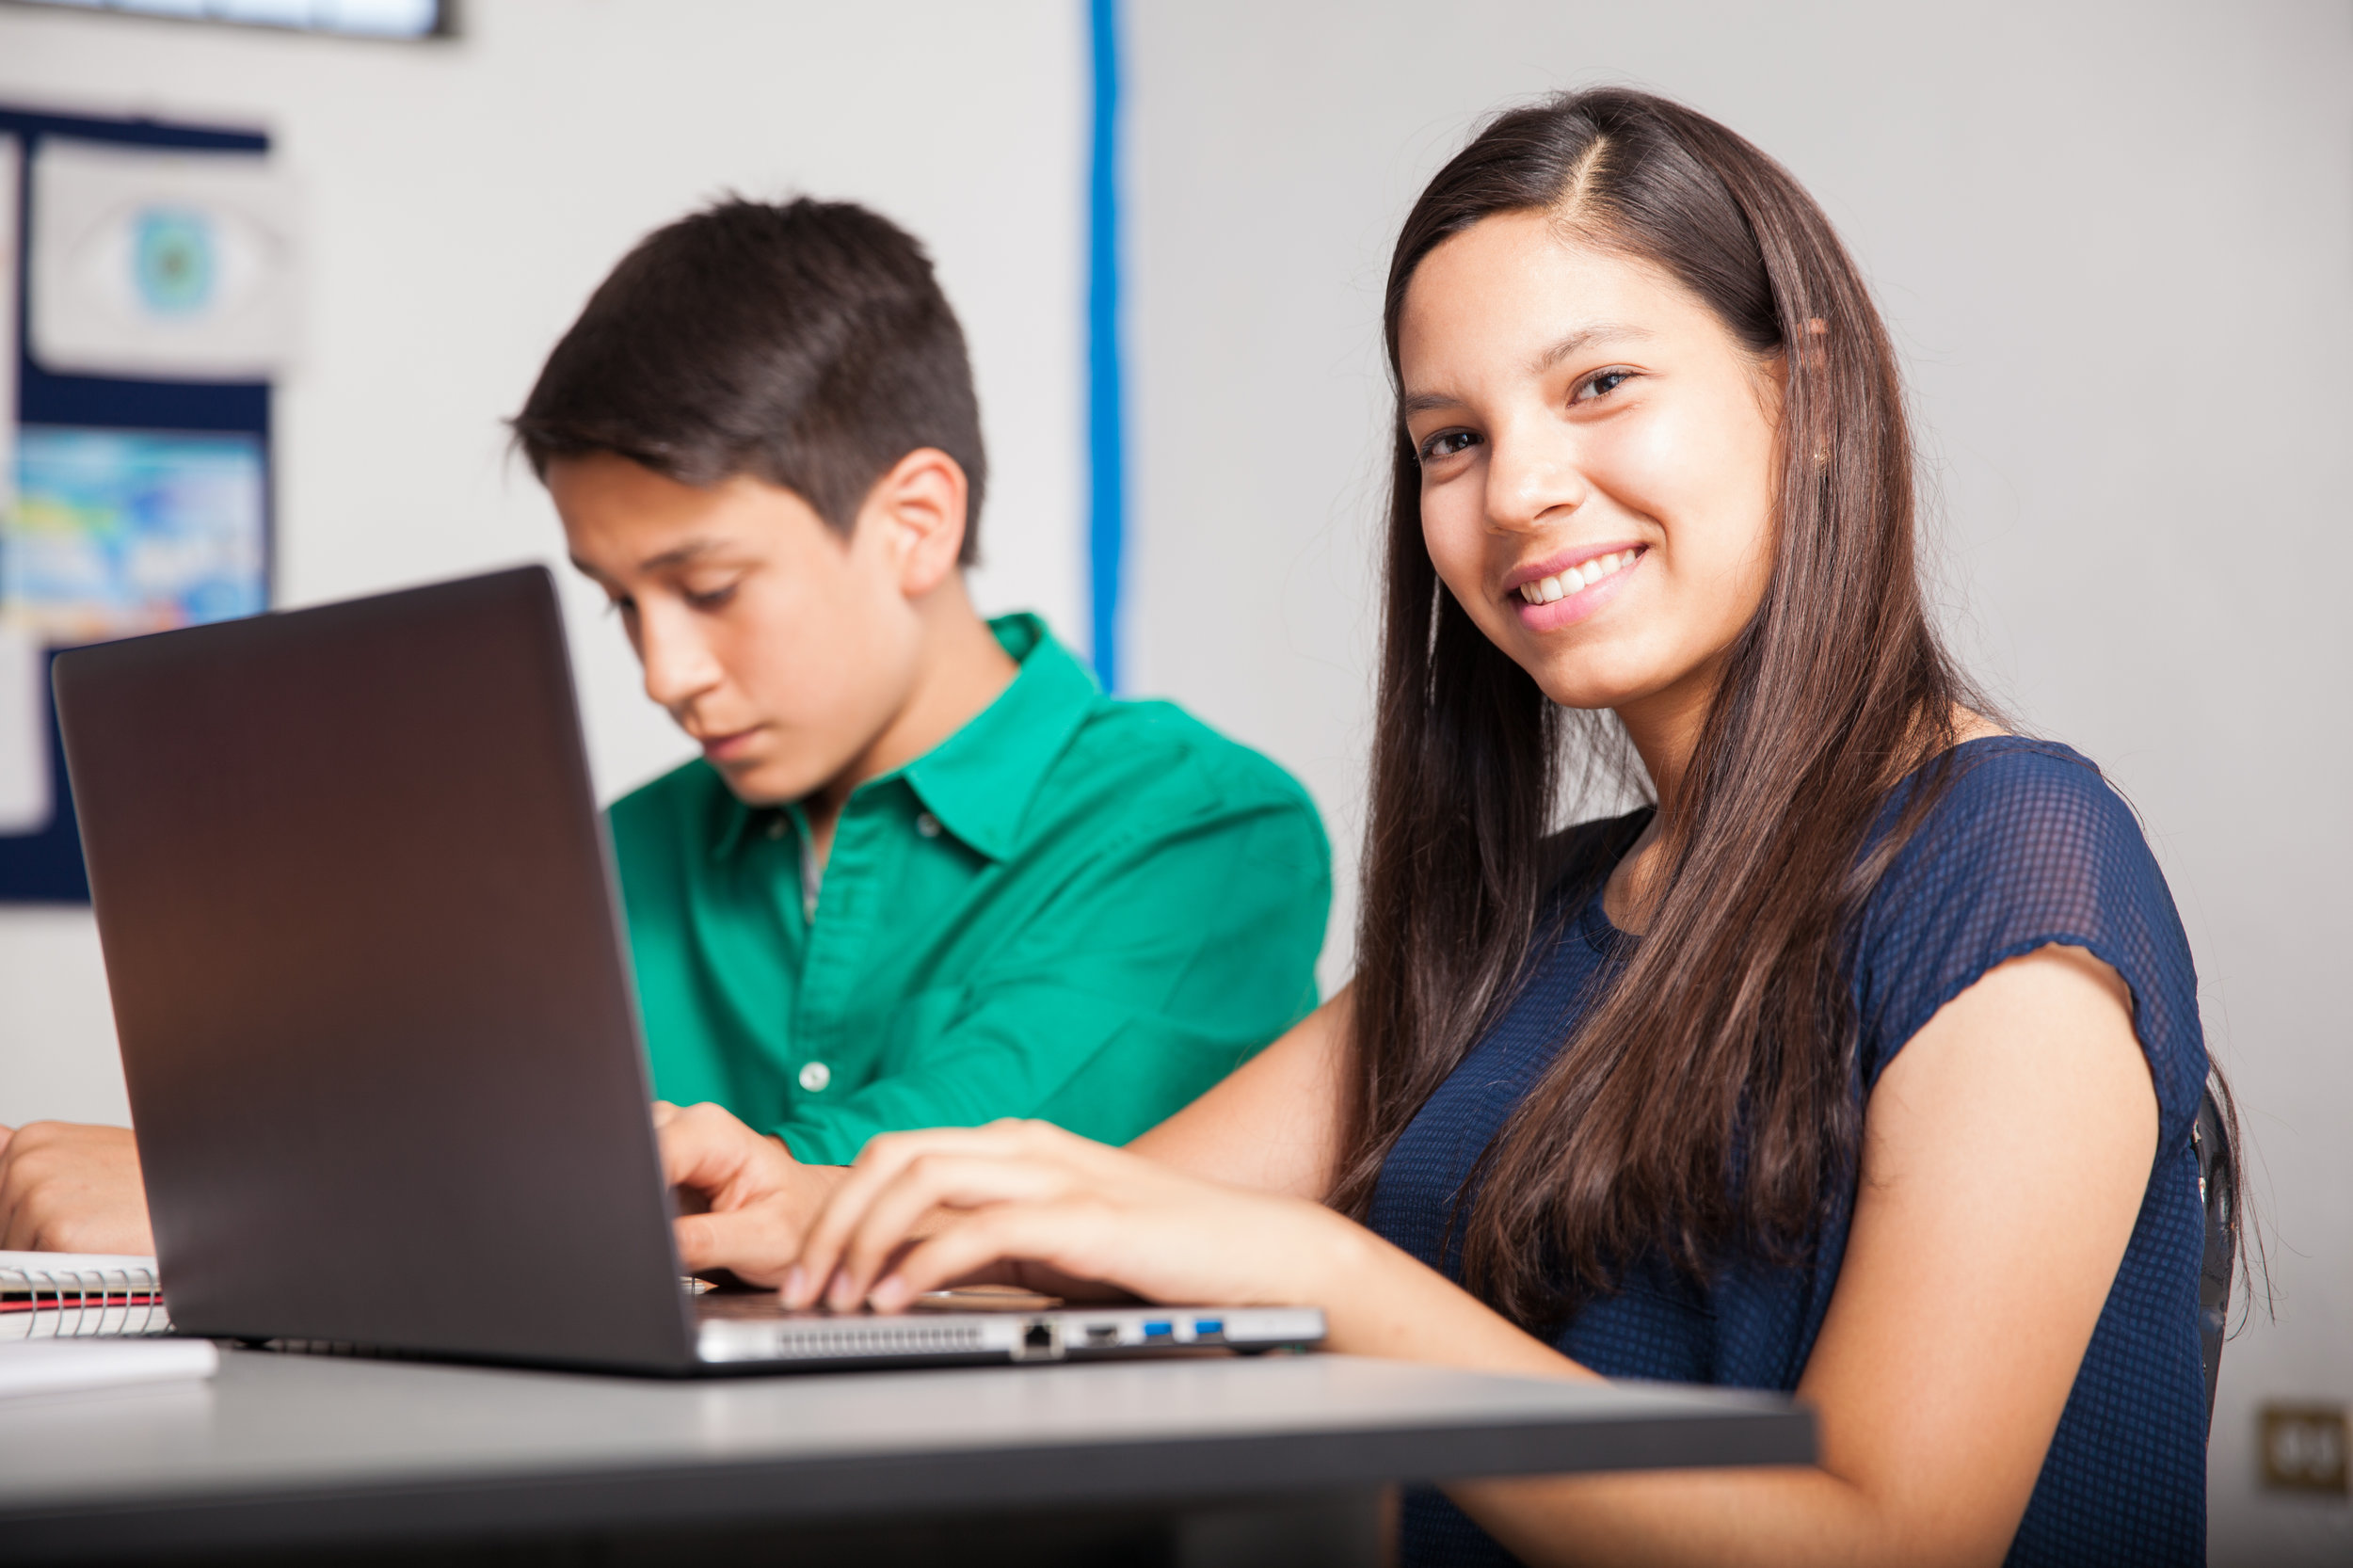 Digital Graphics and Media Youth